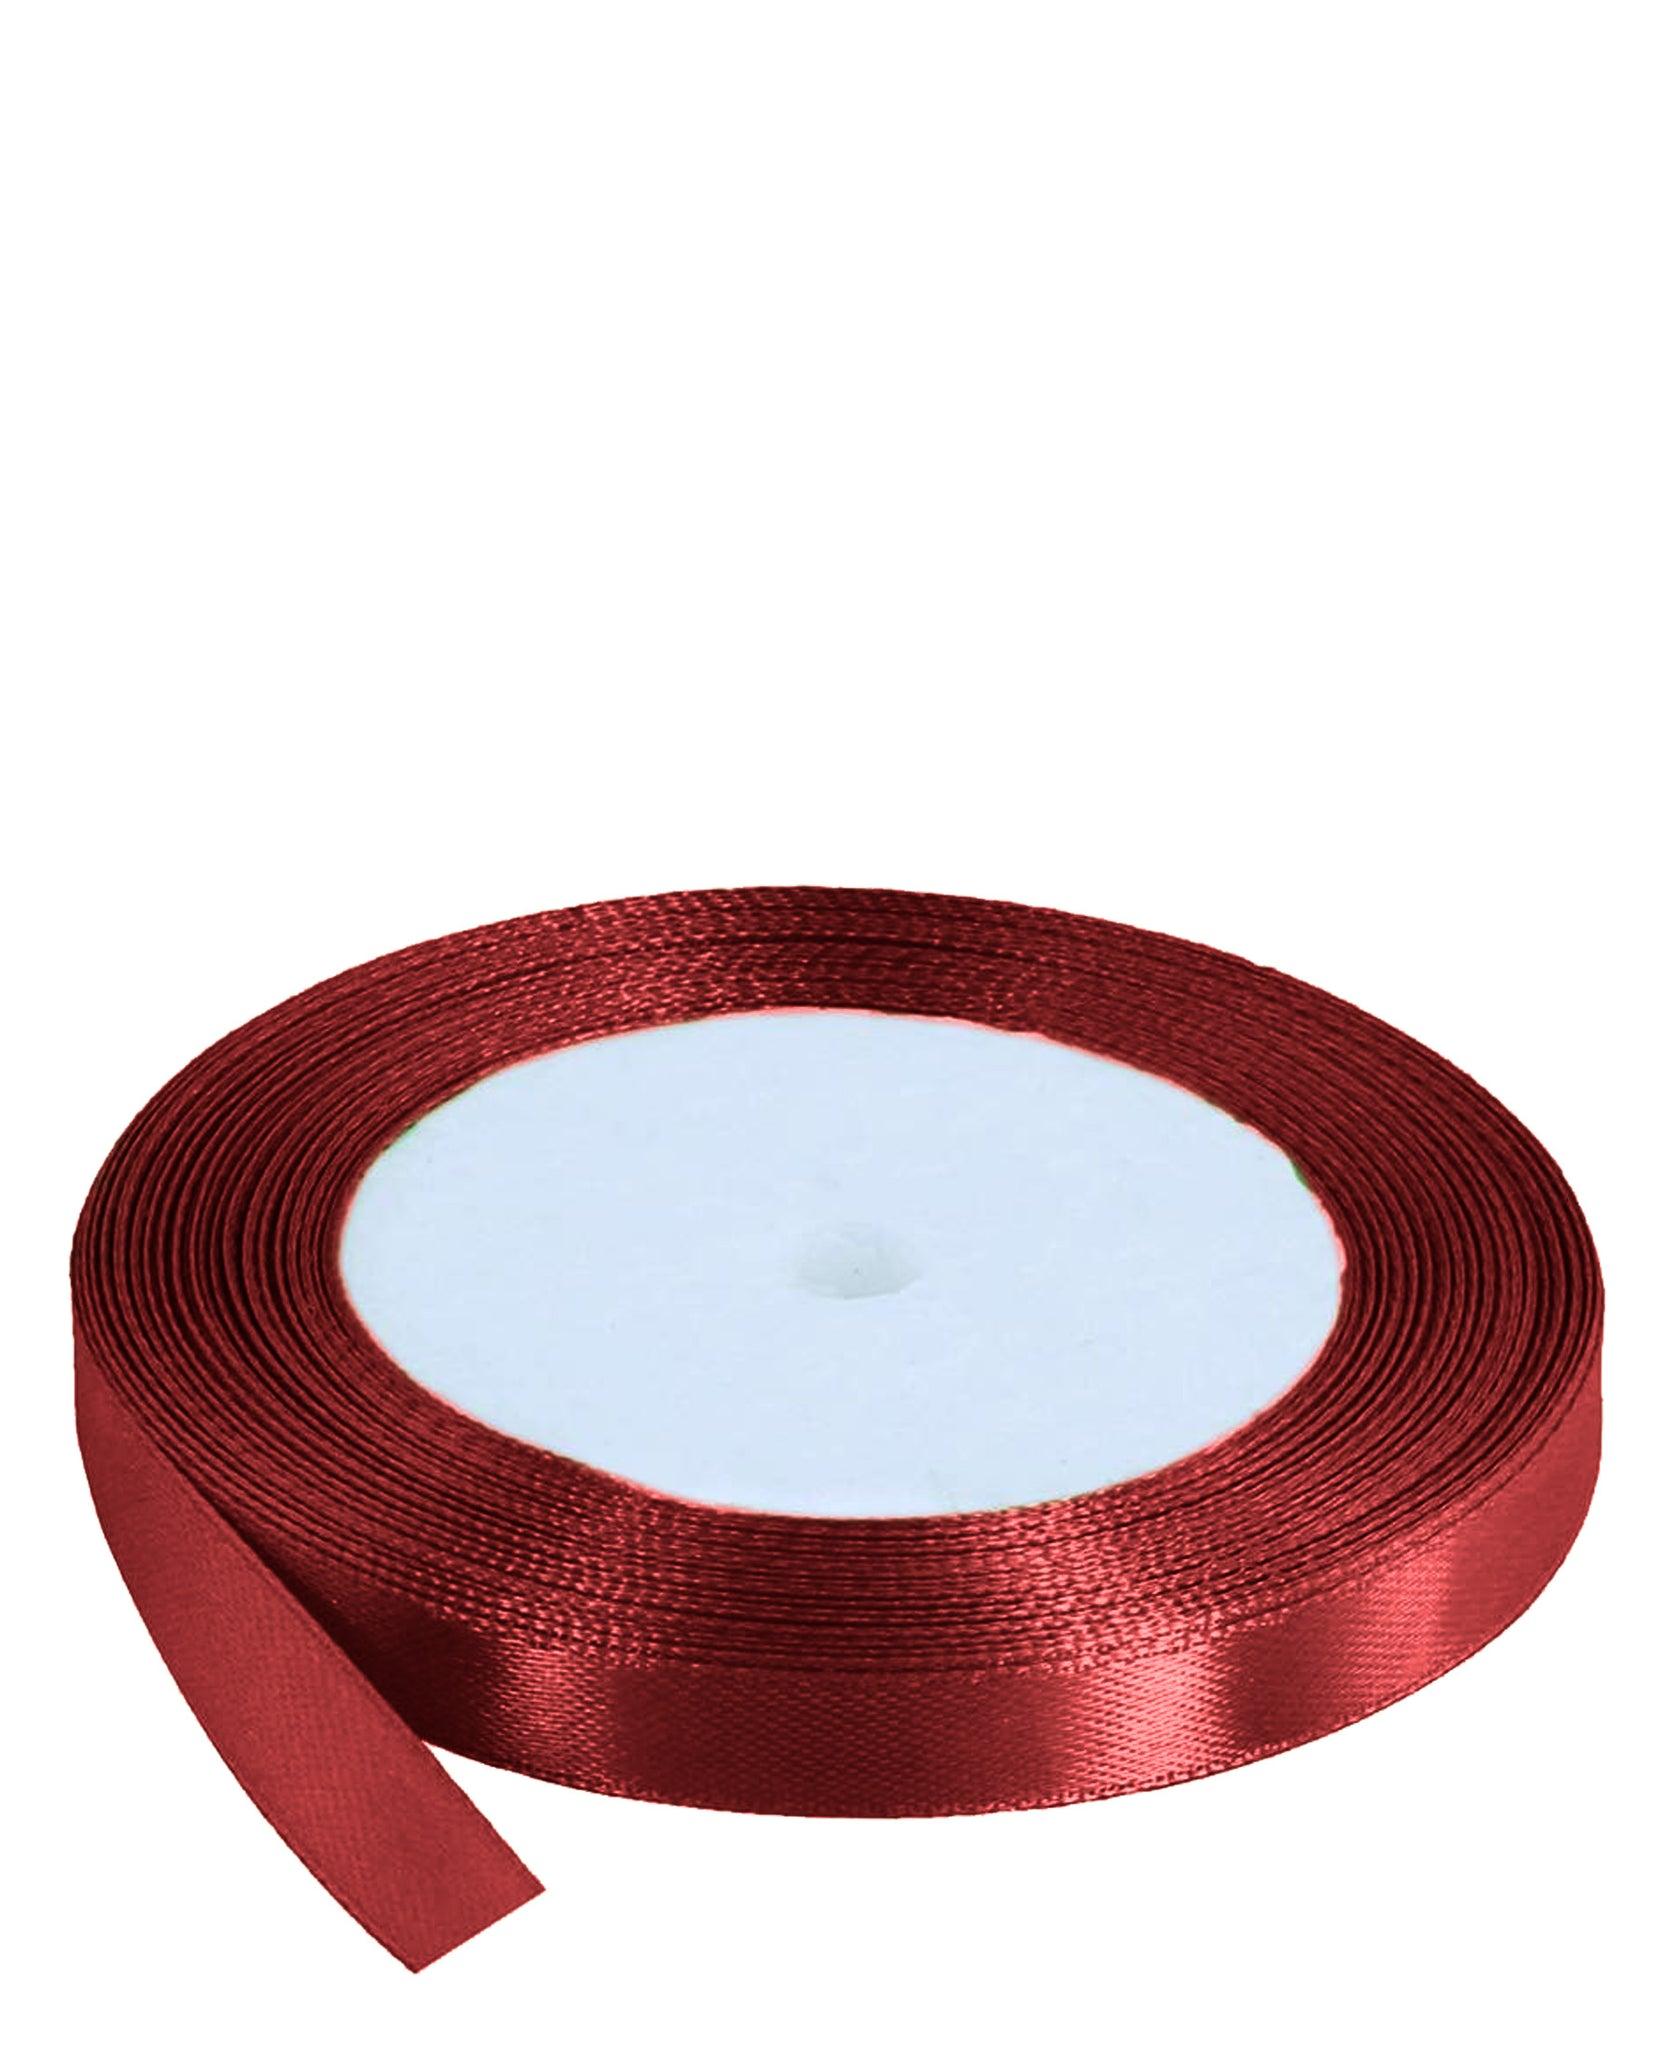 Satin Ribbon - Maroon